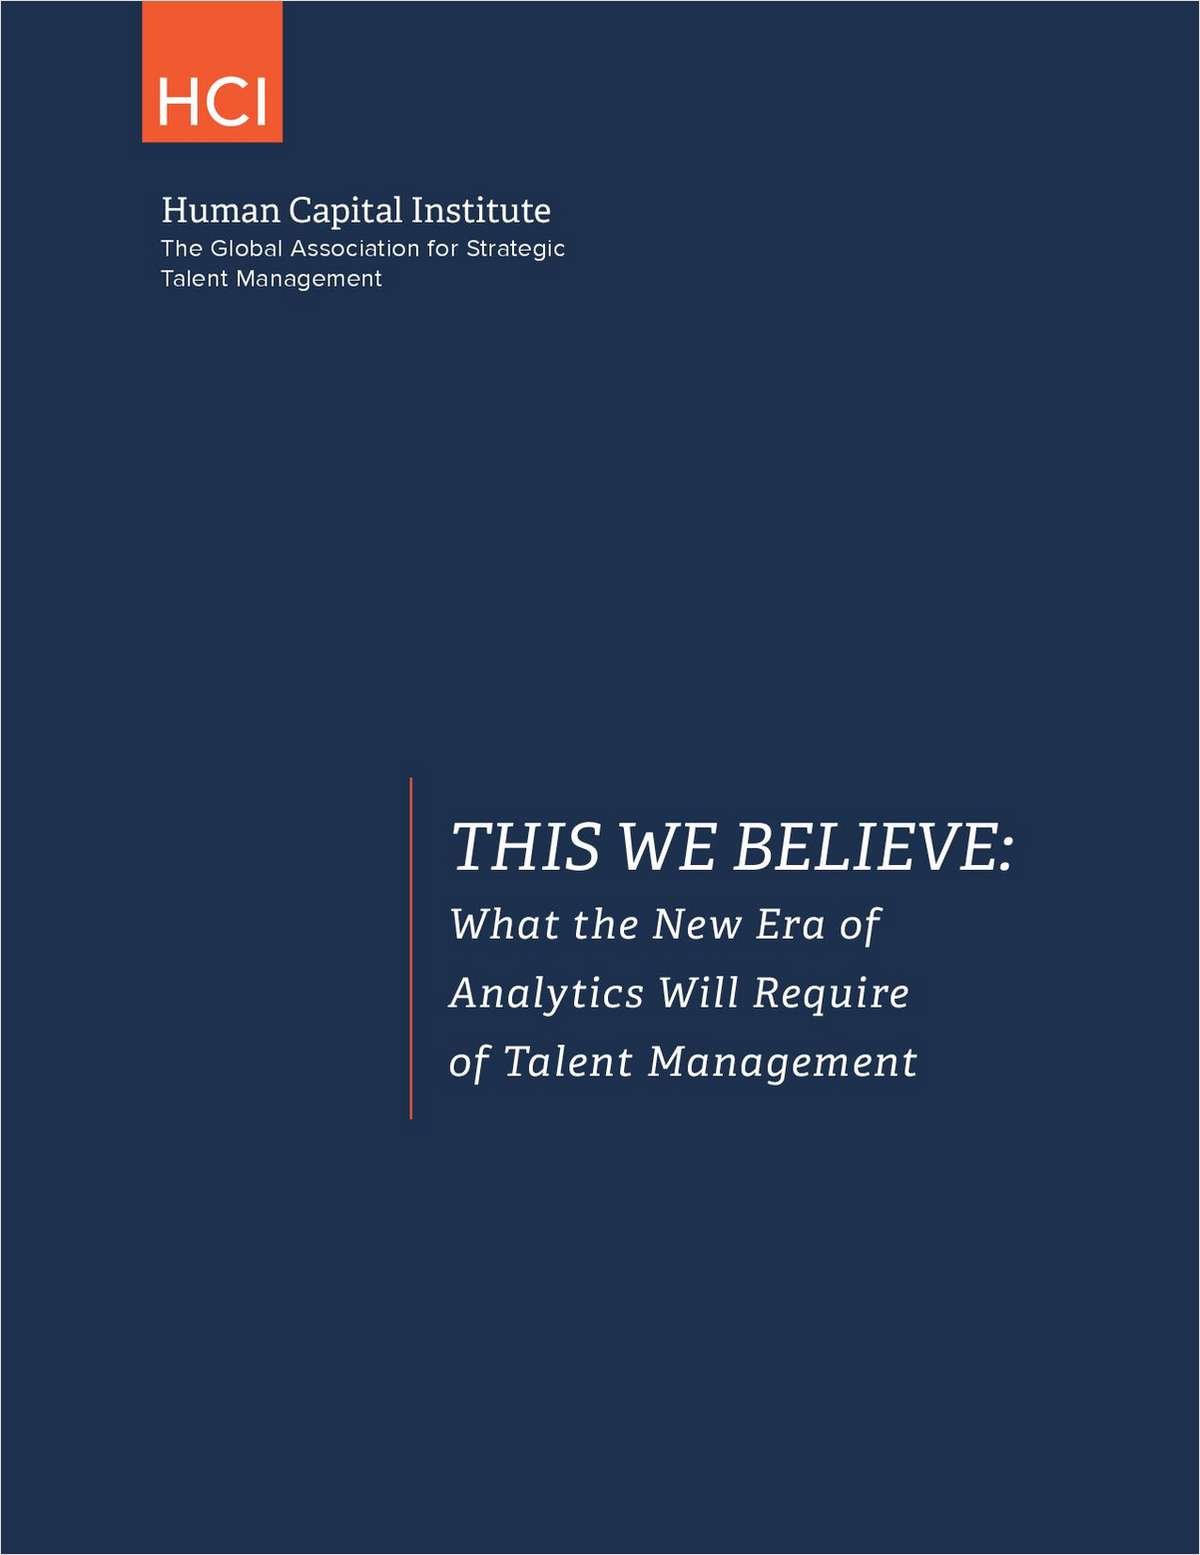 What the New Era of Analytics Will Require of Talent Management